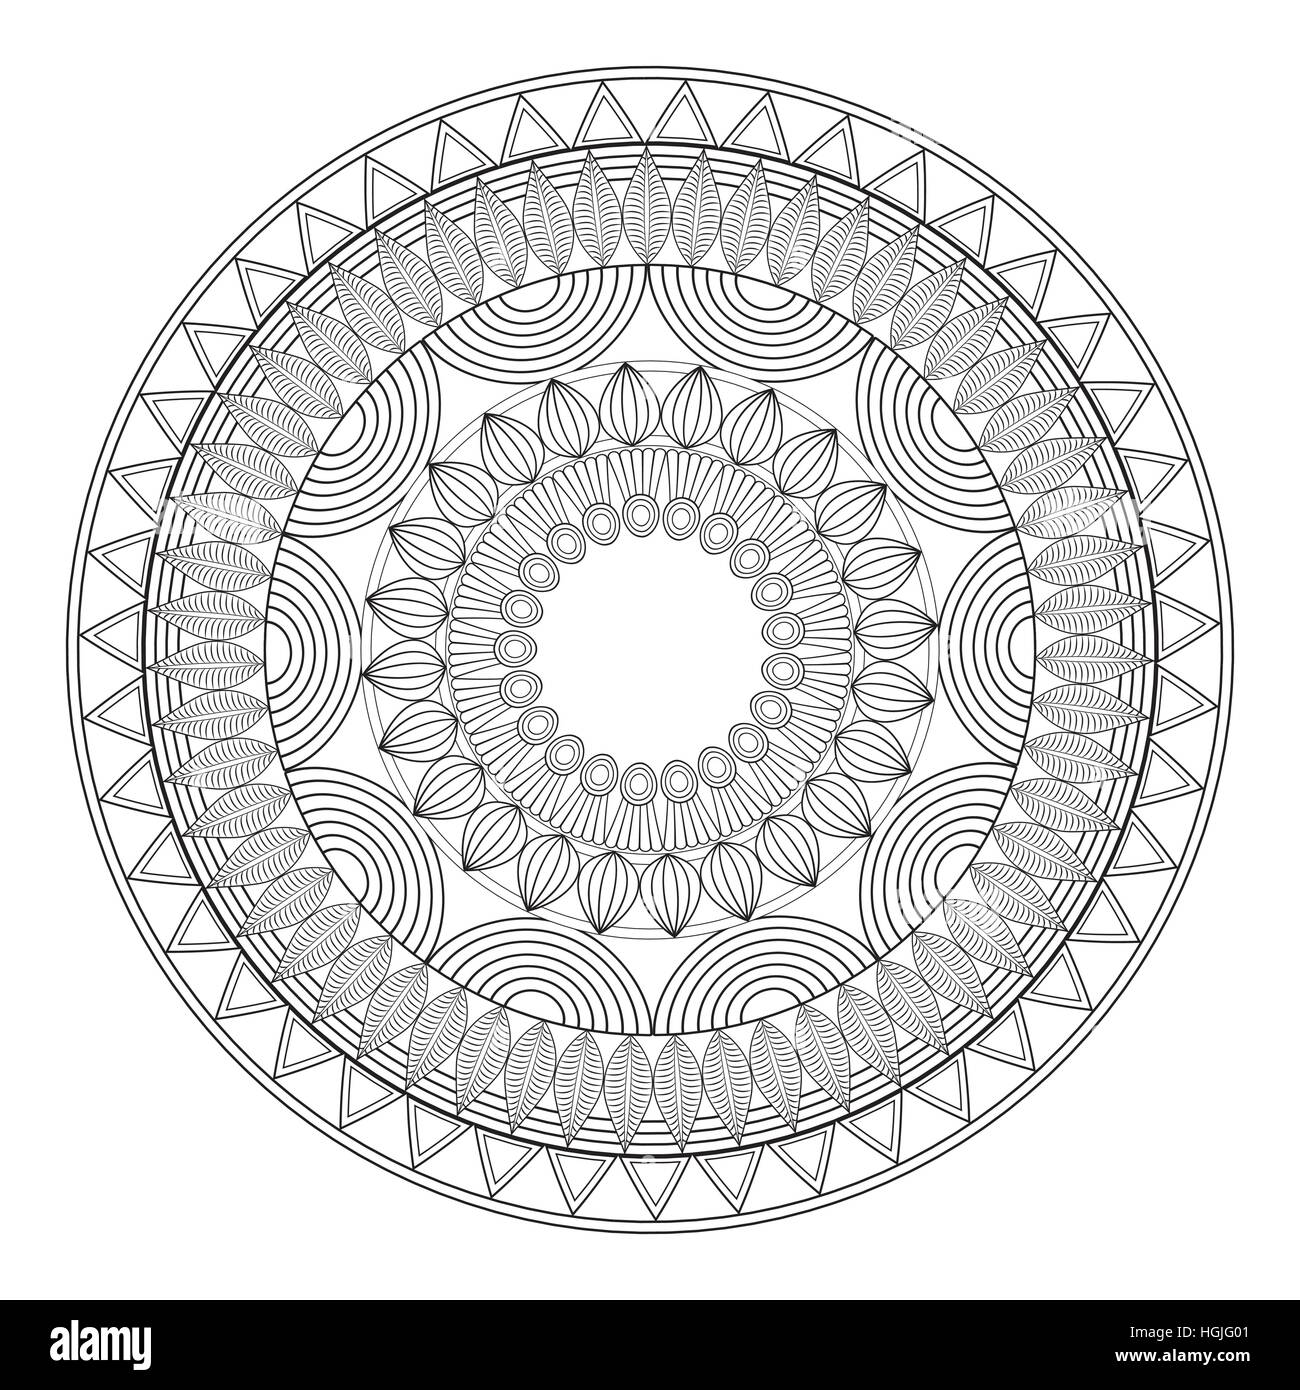 mandala mystical scheme outline - Stock Image